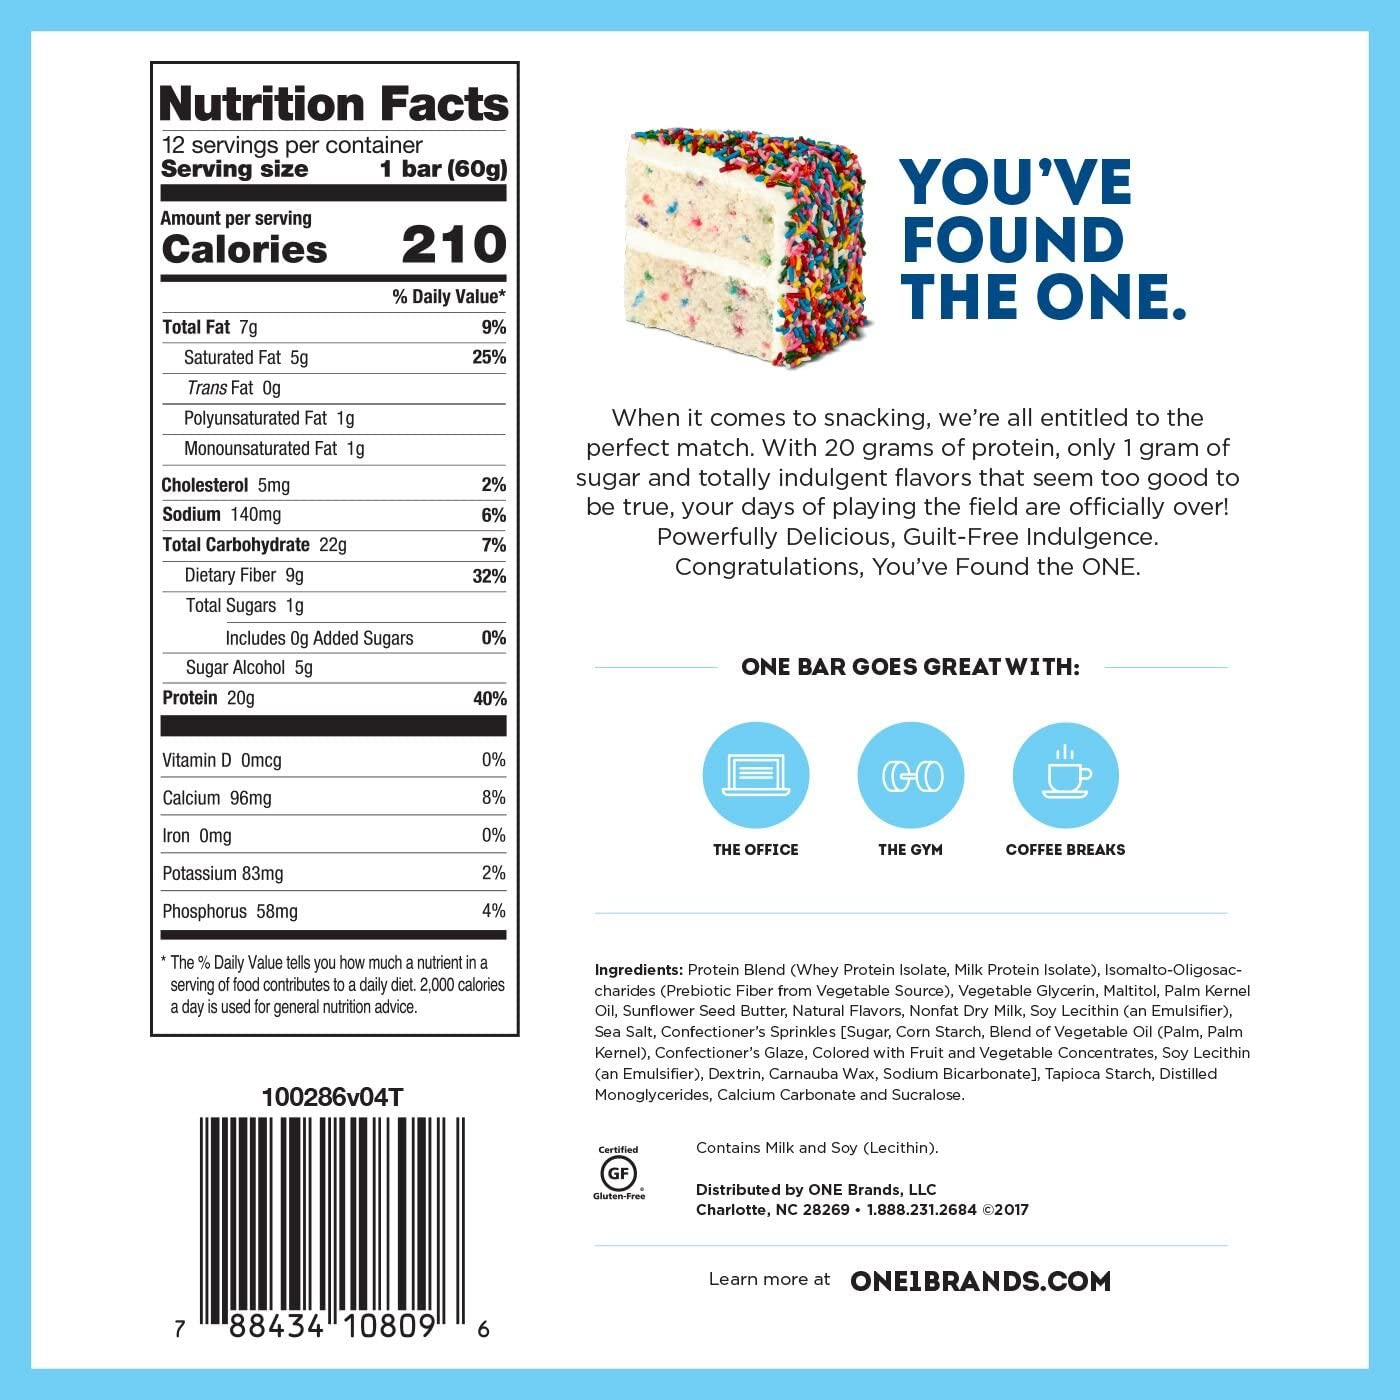 Remarkable One Brand One Bar Birthday Cake 12 Count Amazon Co Uk Health Funny Birthday Cards Online Inifodamsfinfo